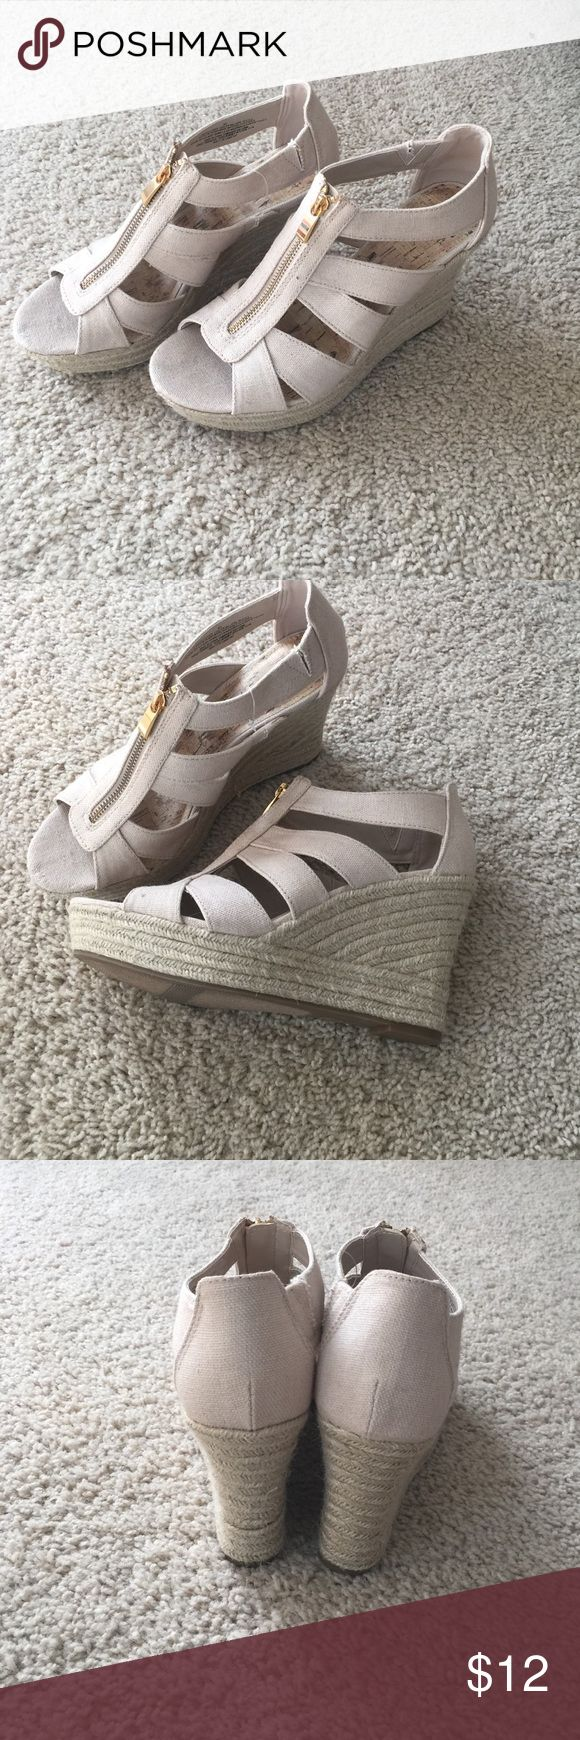 NWOT beige zip up wedge! Similar look to the Micheal Kors Sandals, these tan zip up wedges are a perfect summer shoe! Shoes Wedges